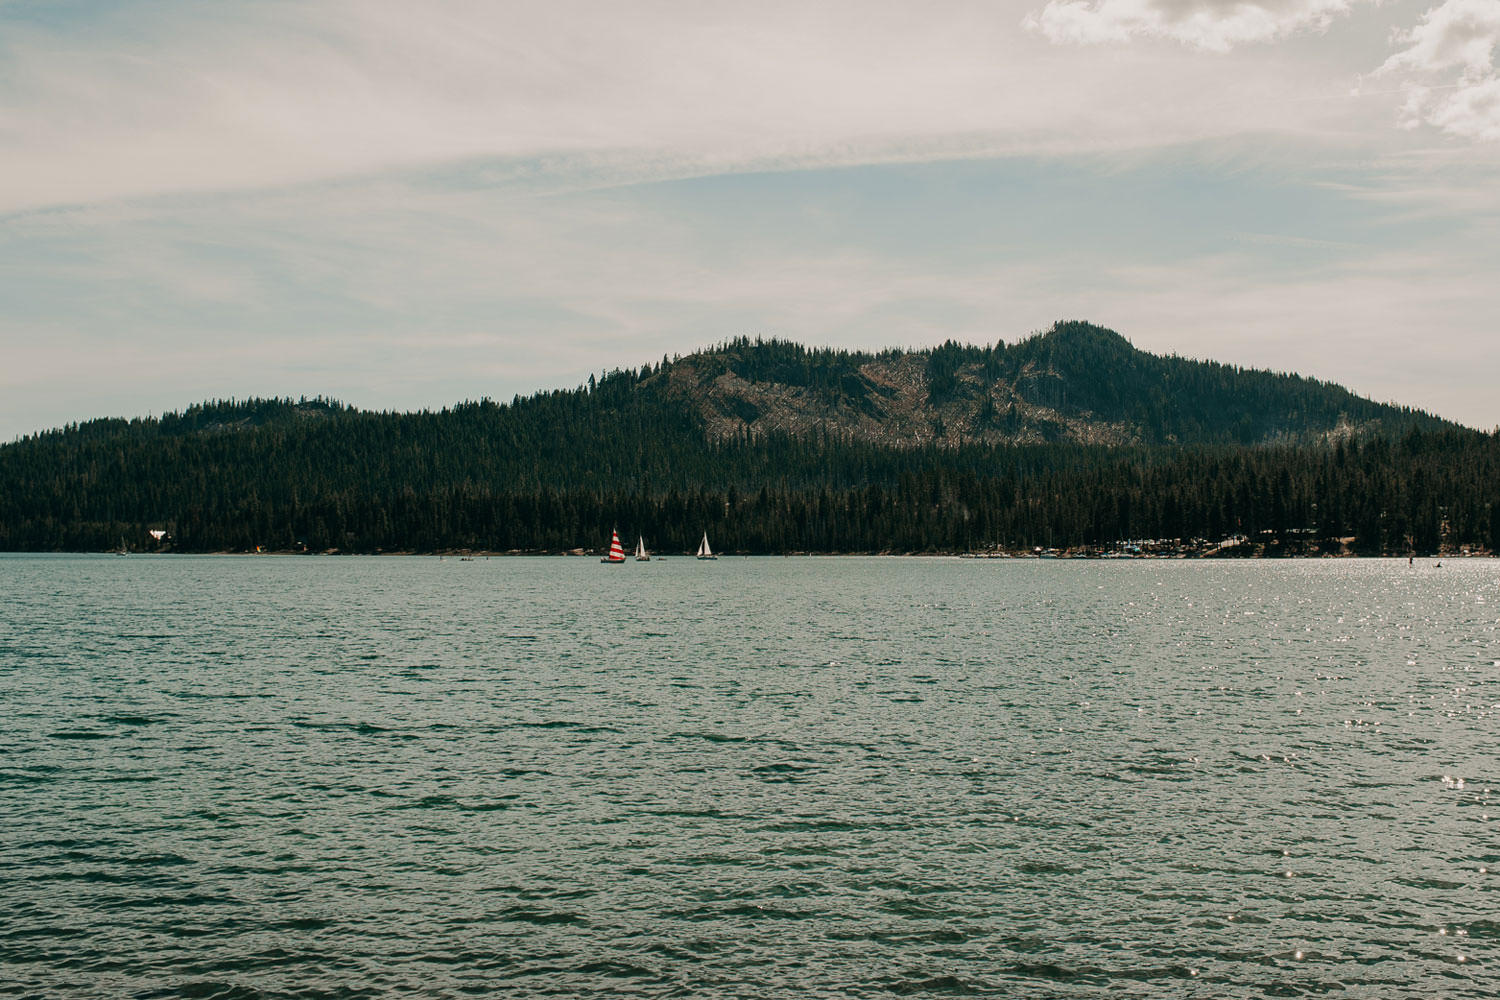 Sail boats look tiny on the large Elk Lake.